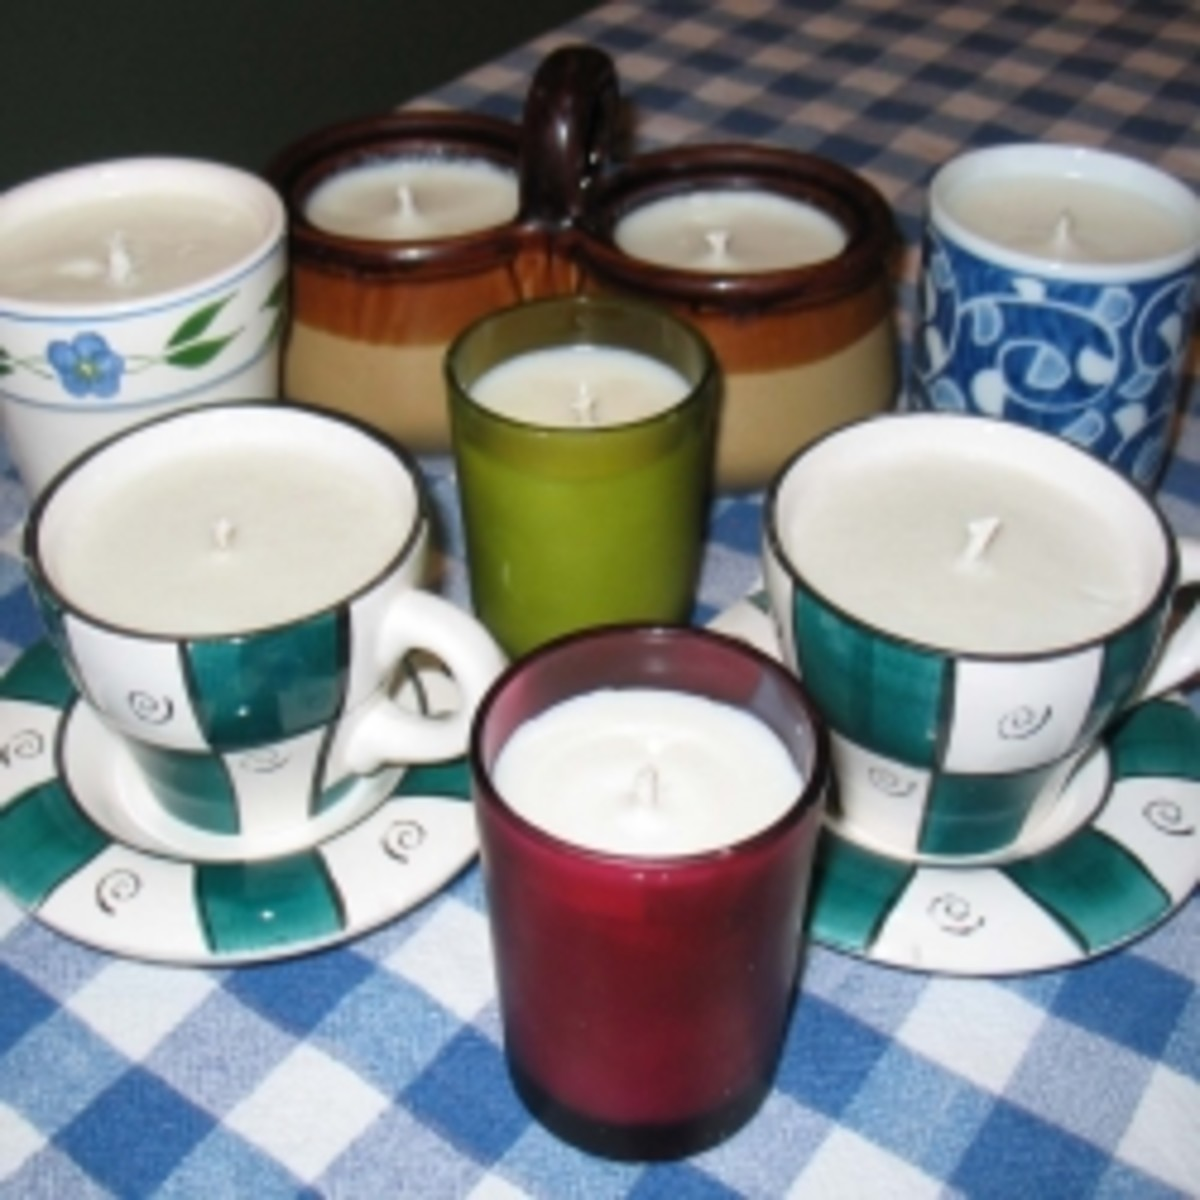 Make Your Own Candles in 9 Easy Steps